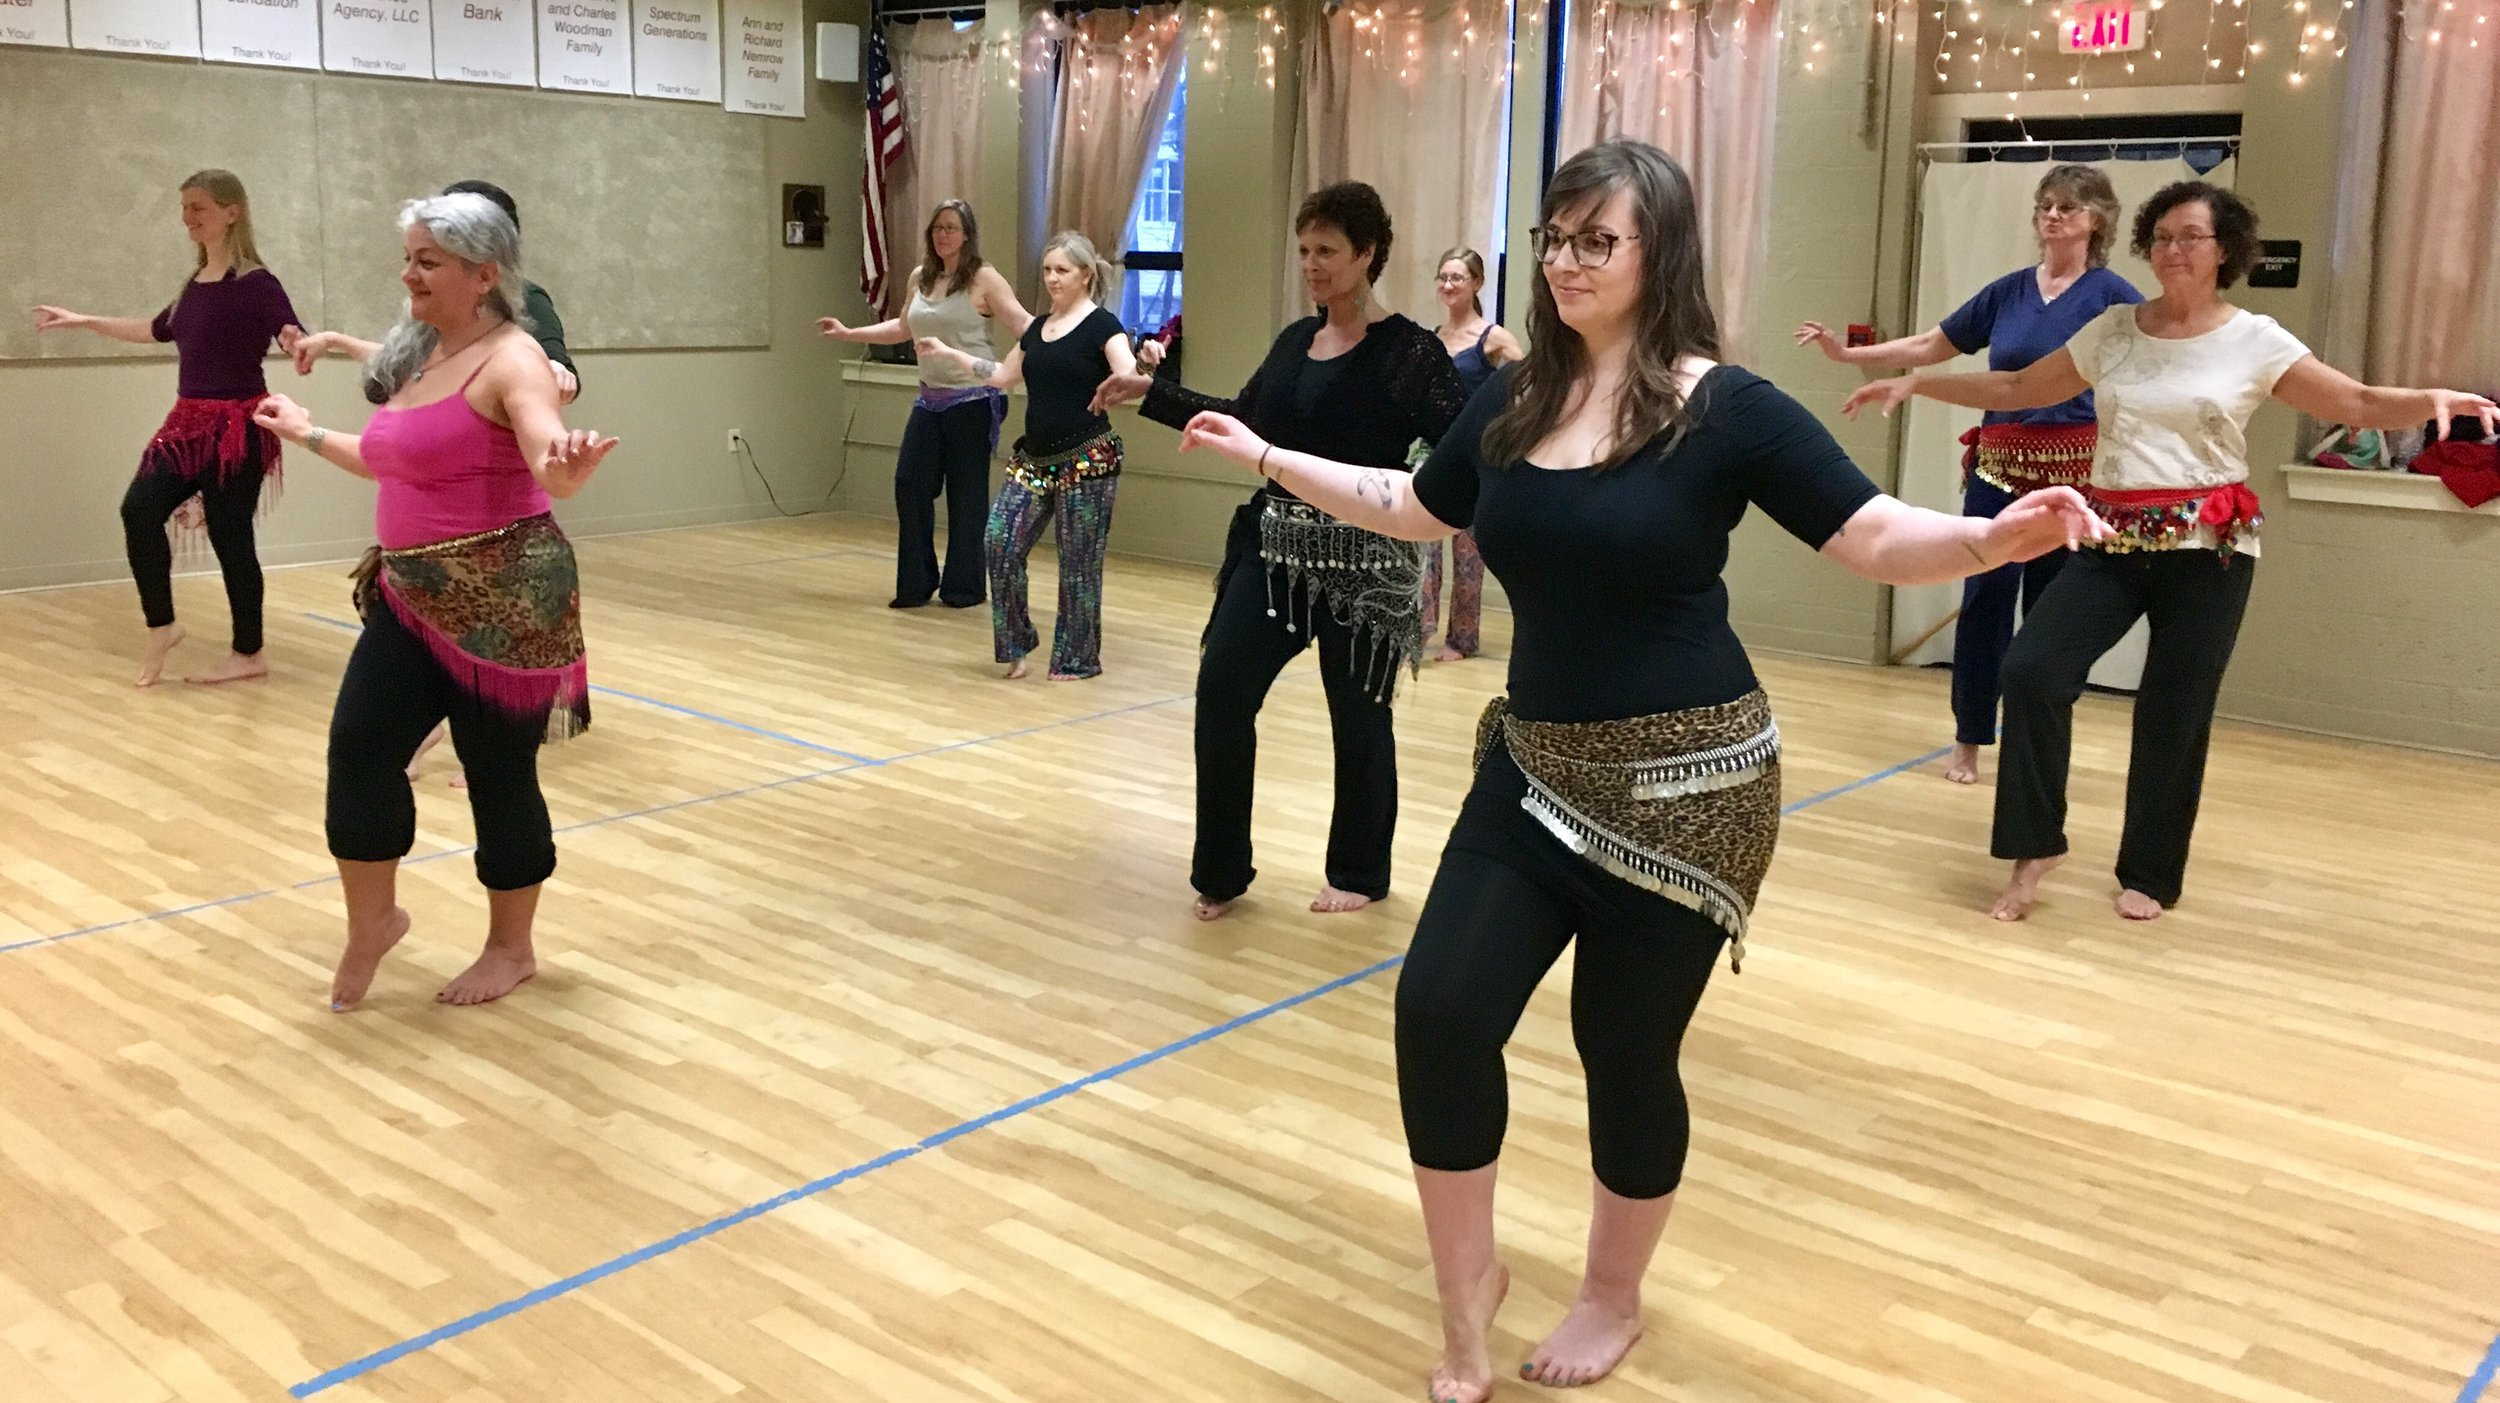 Authentic Belly Dance is proud, powerful and a lot of fun!  The emphasis will be shimmies, isolating movements emanating from the core.  Every body type is celebrated!  Jingling Hip Scarves will be provided.  The workshop is free for students in grades 6-12.  Space is limited.  Registration is required.  Please call 443-5141, ext. 12, to sign up.    Community Room, Patten Free Library, 33 Summer Street, Bath, ME  04530.  Light snacks will be provided afterwards.  FMI, Contact Roberta Jordan at rjordan@patten.lib.me.us or 443-5141, x25